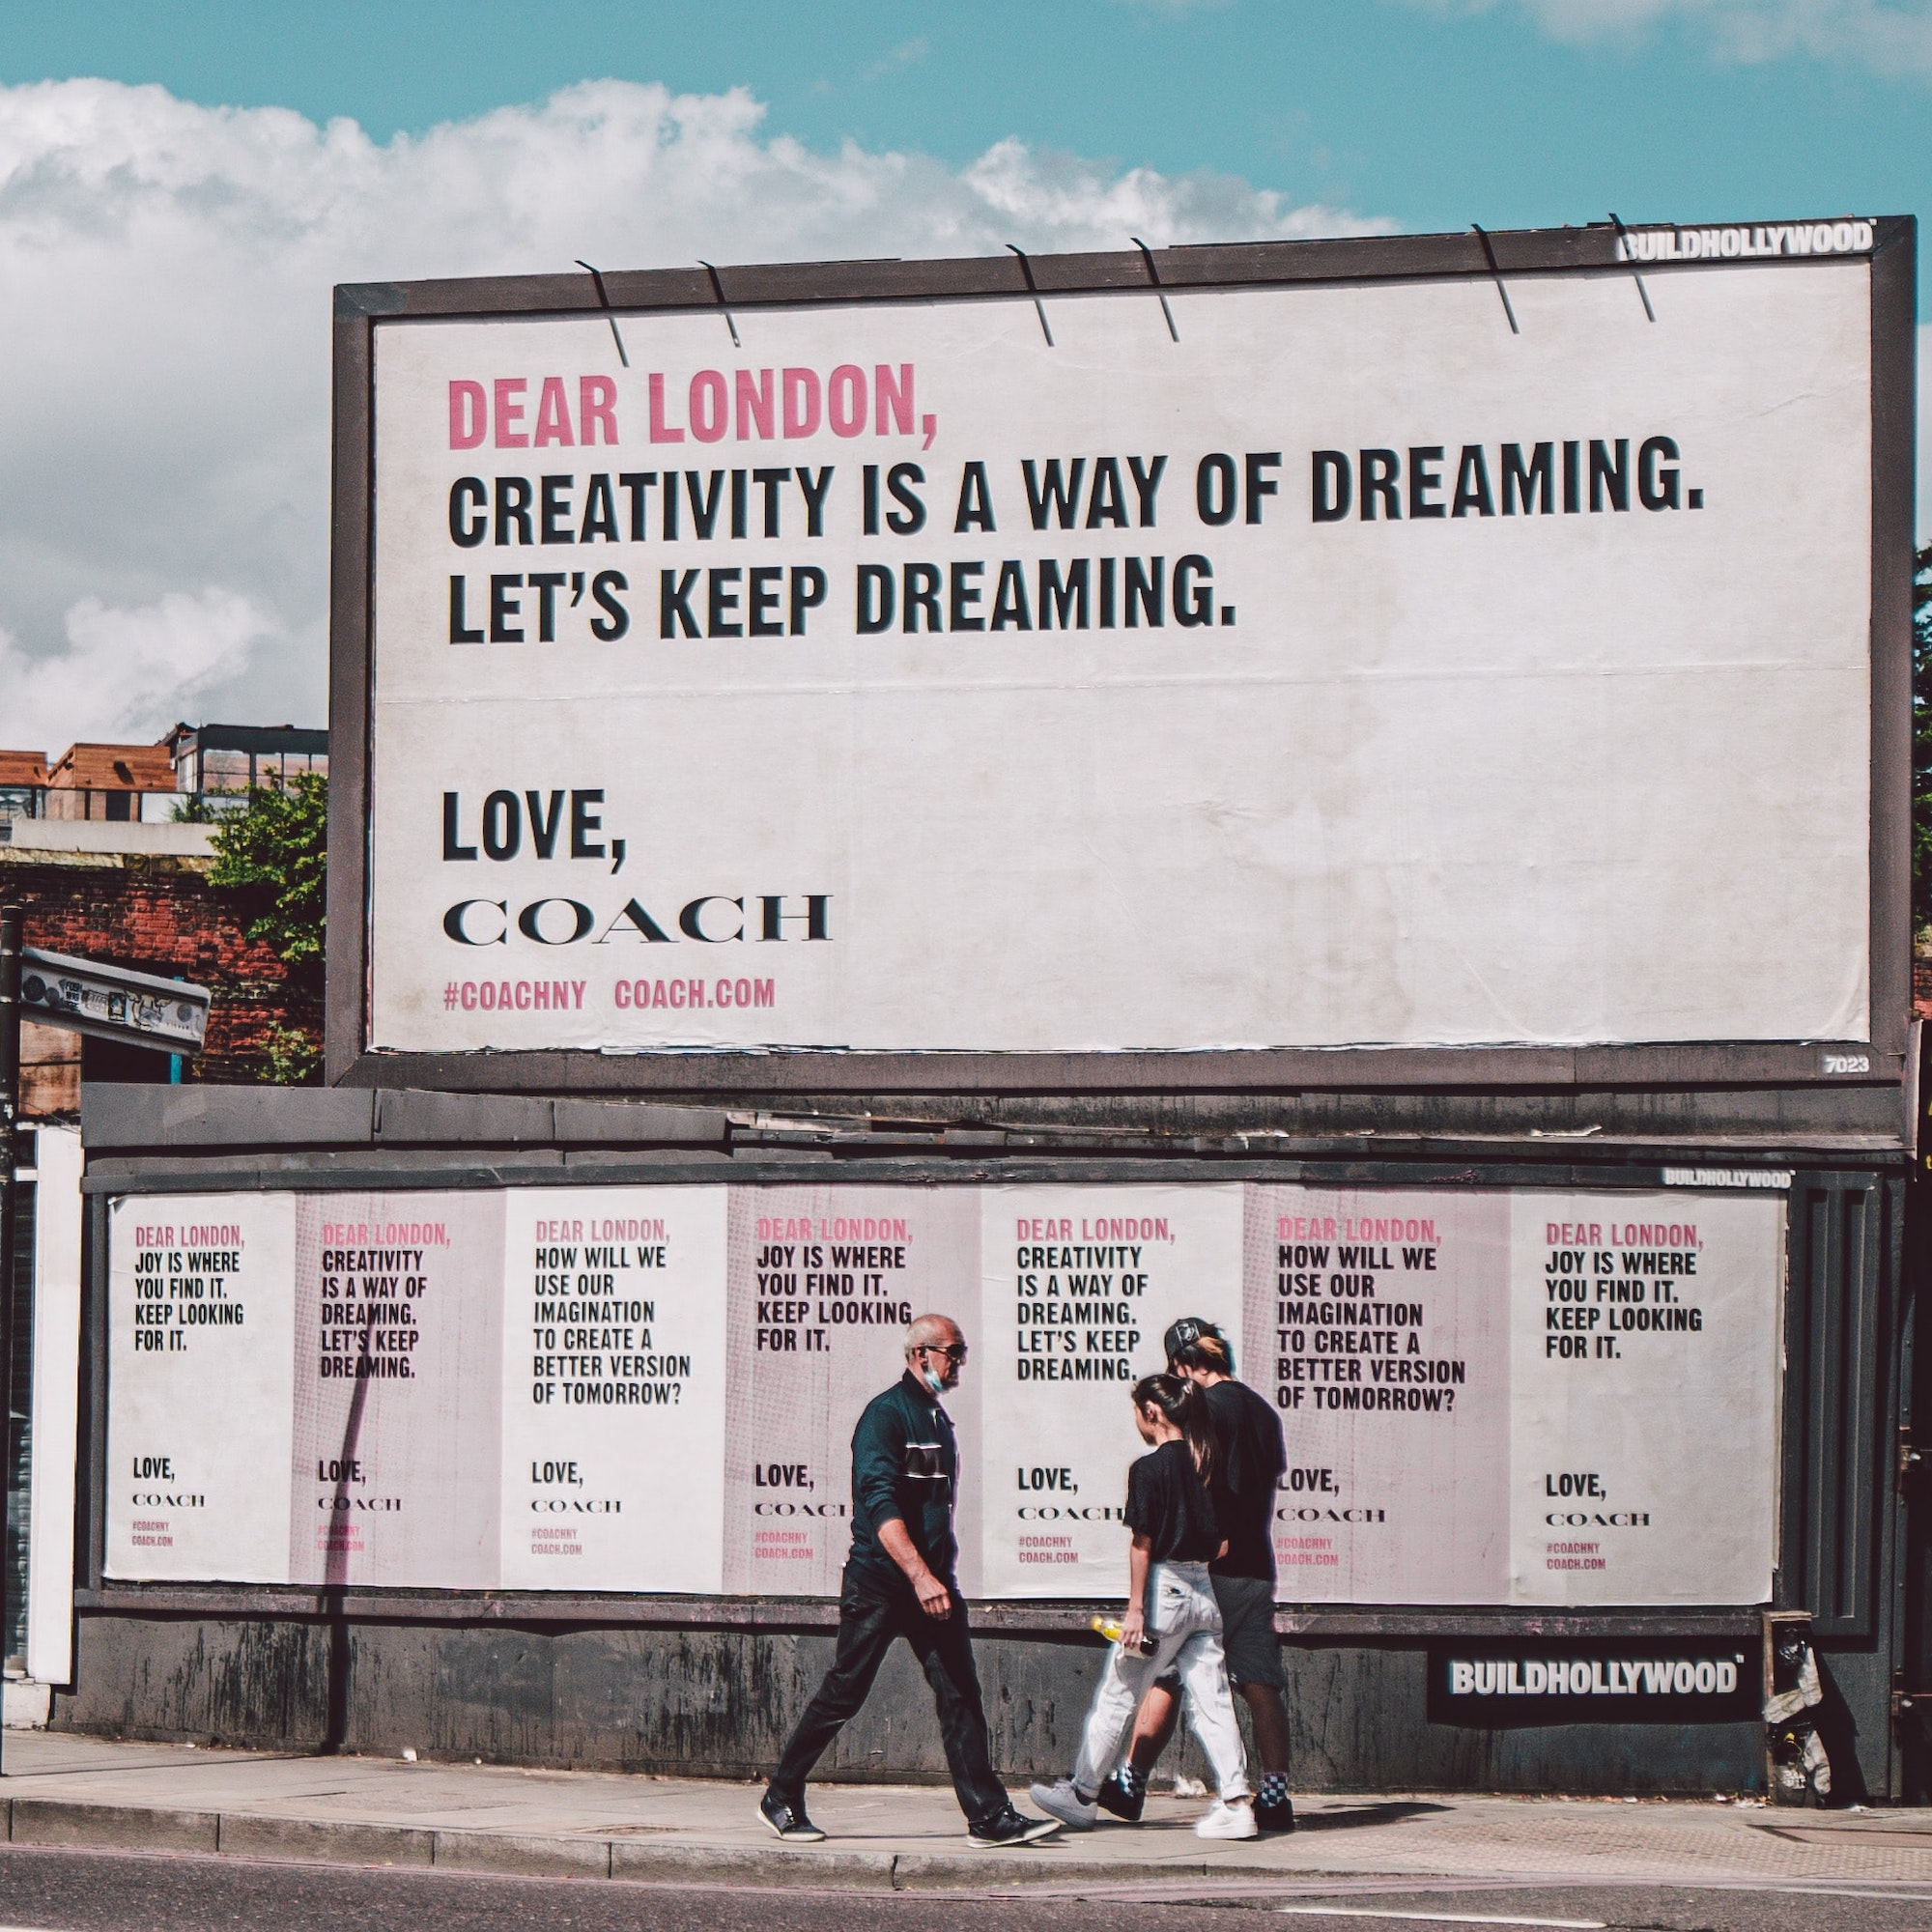 Has traditional marketing died a death? Billboard that is advertising Coach fashion brand